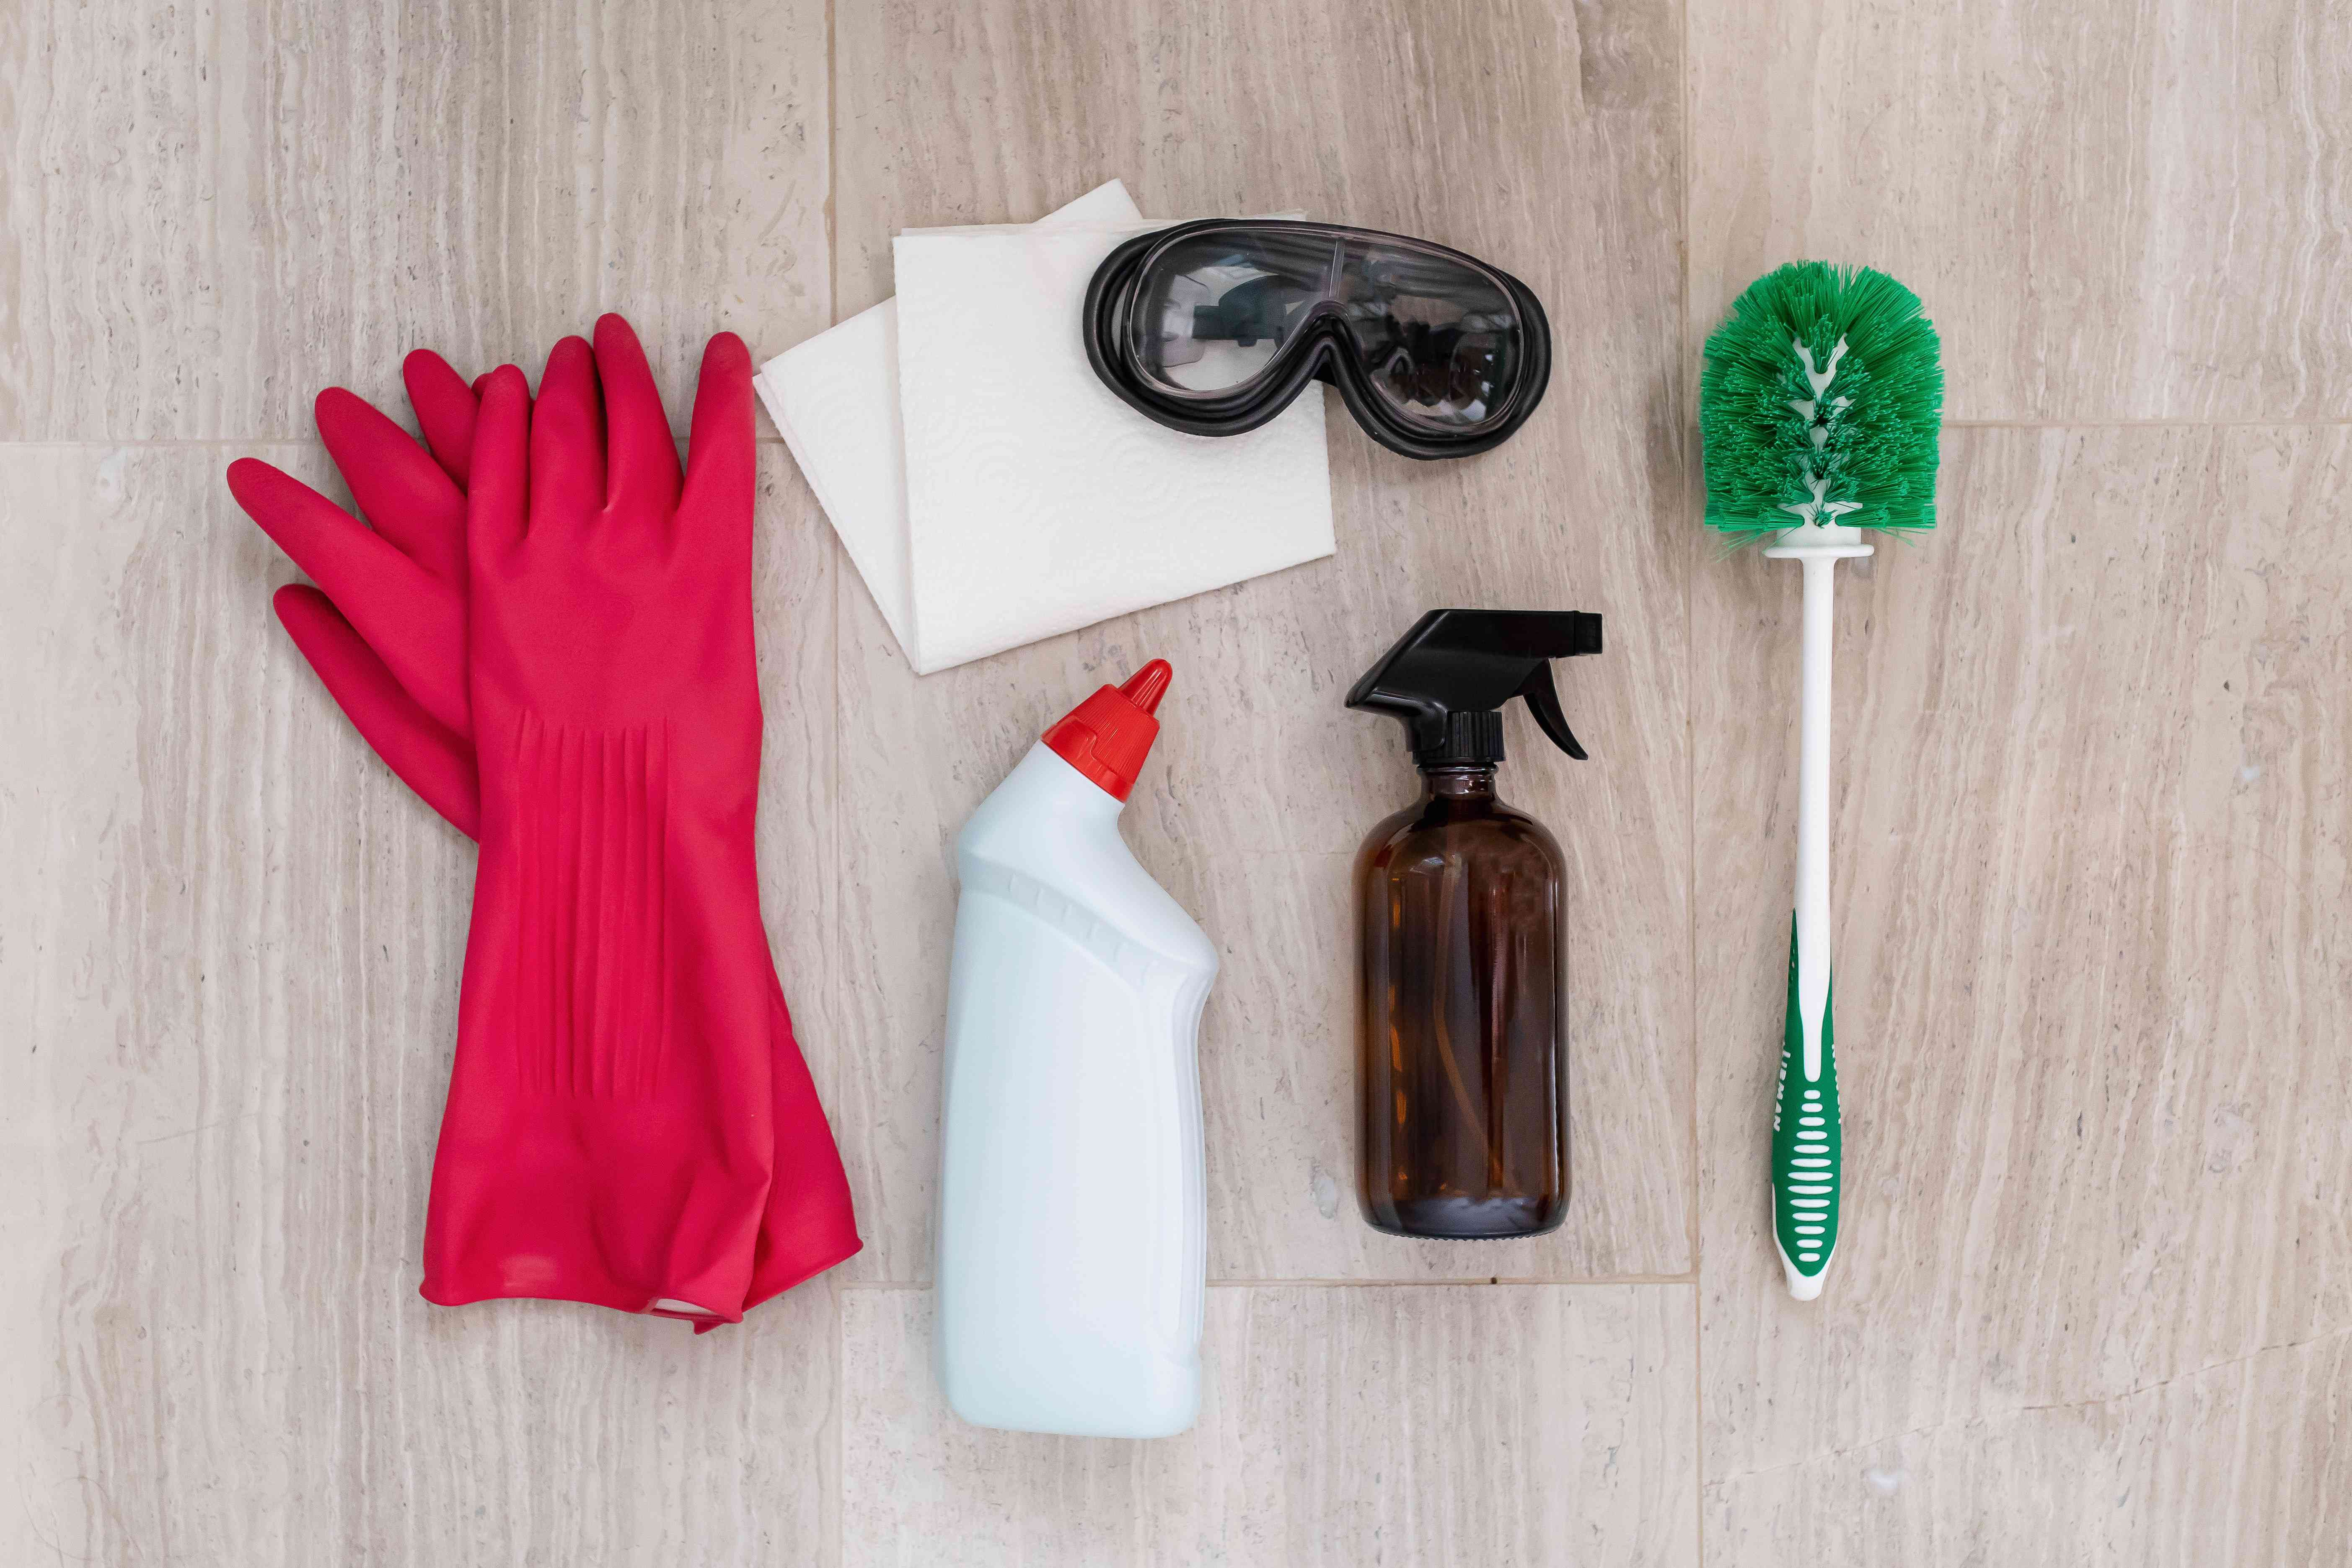 Supplies to effectively clean a toilet